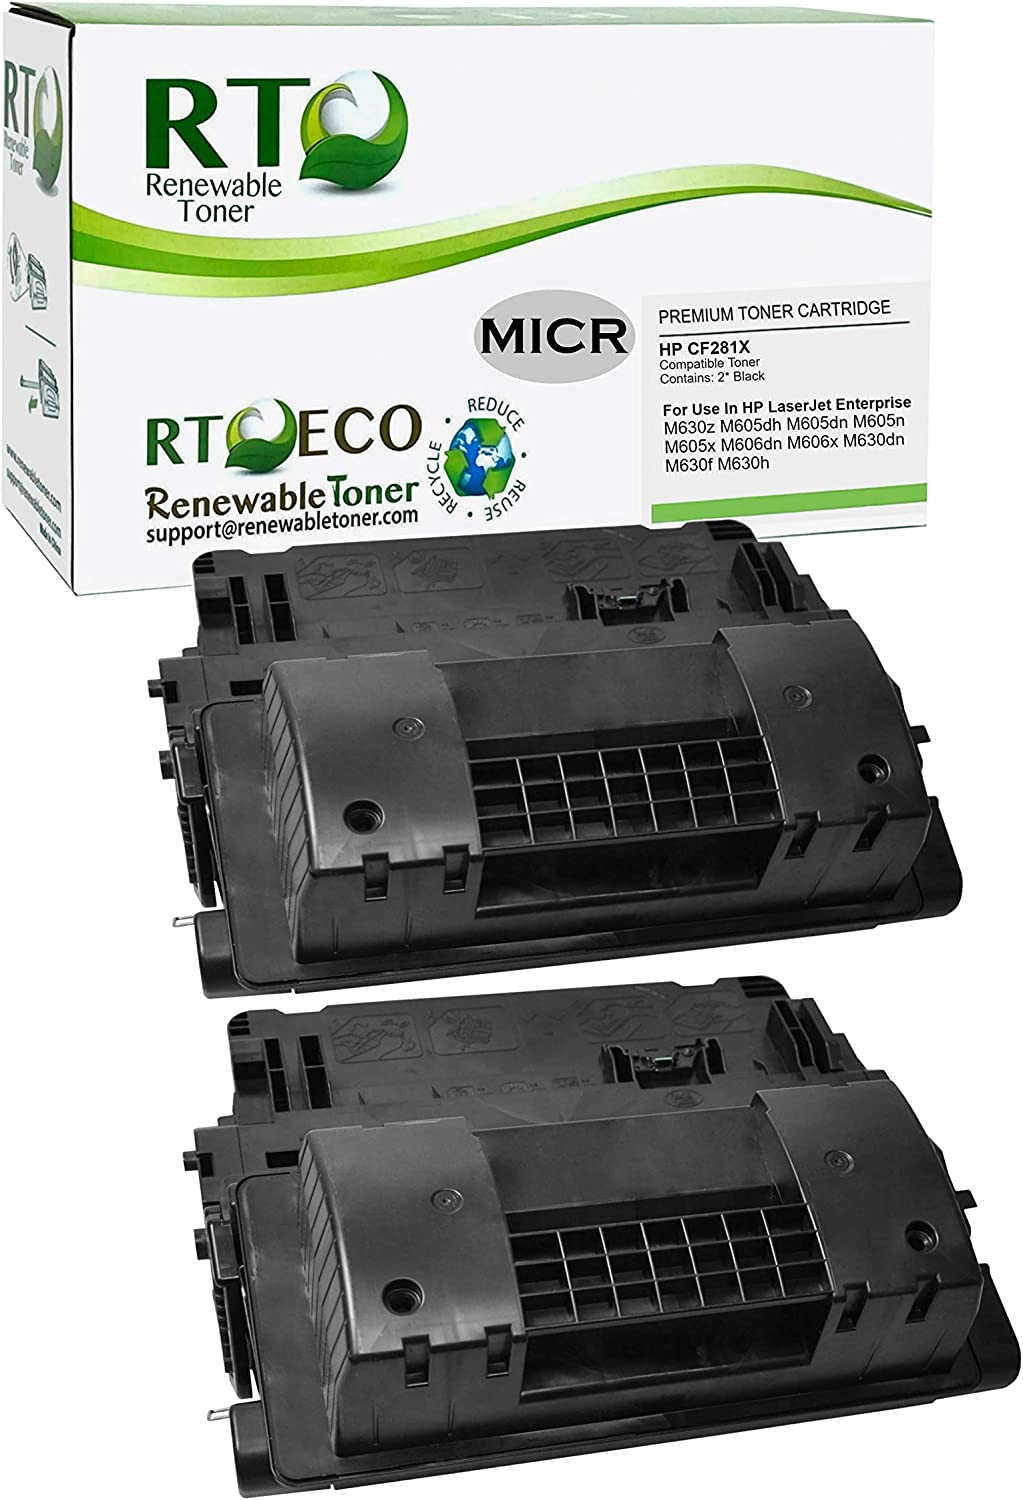 Renewable Toner Compatible MICR Toner Cartridge Replacement for HP 81X CF281X LaserJet Enterprise M605 MFP M630 Black, 2-Pack